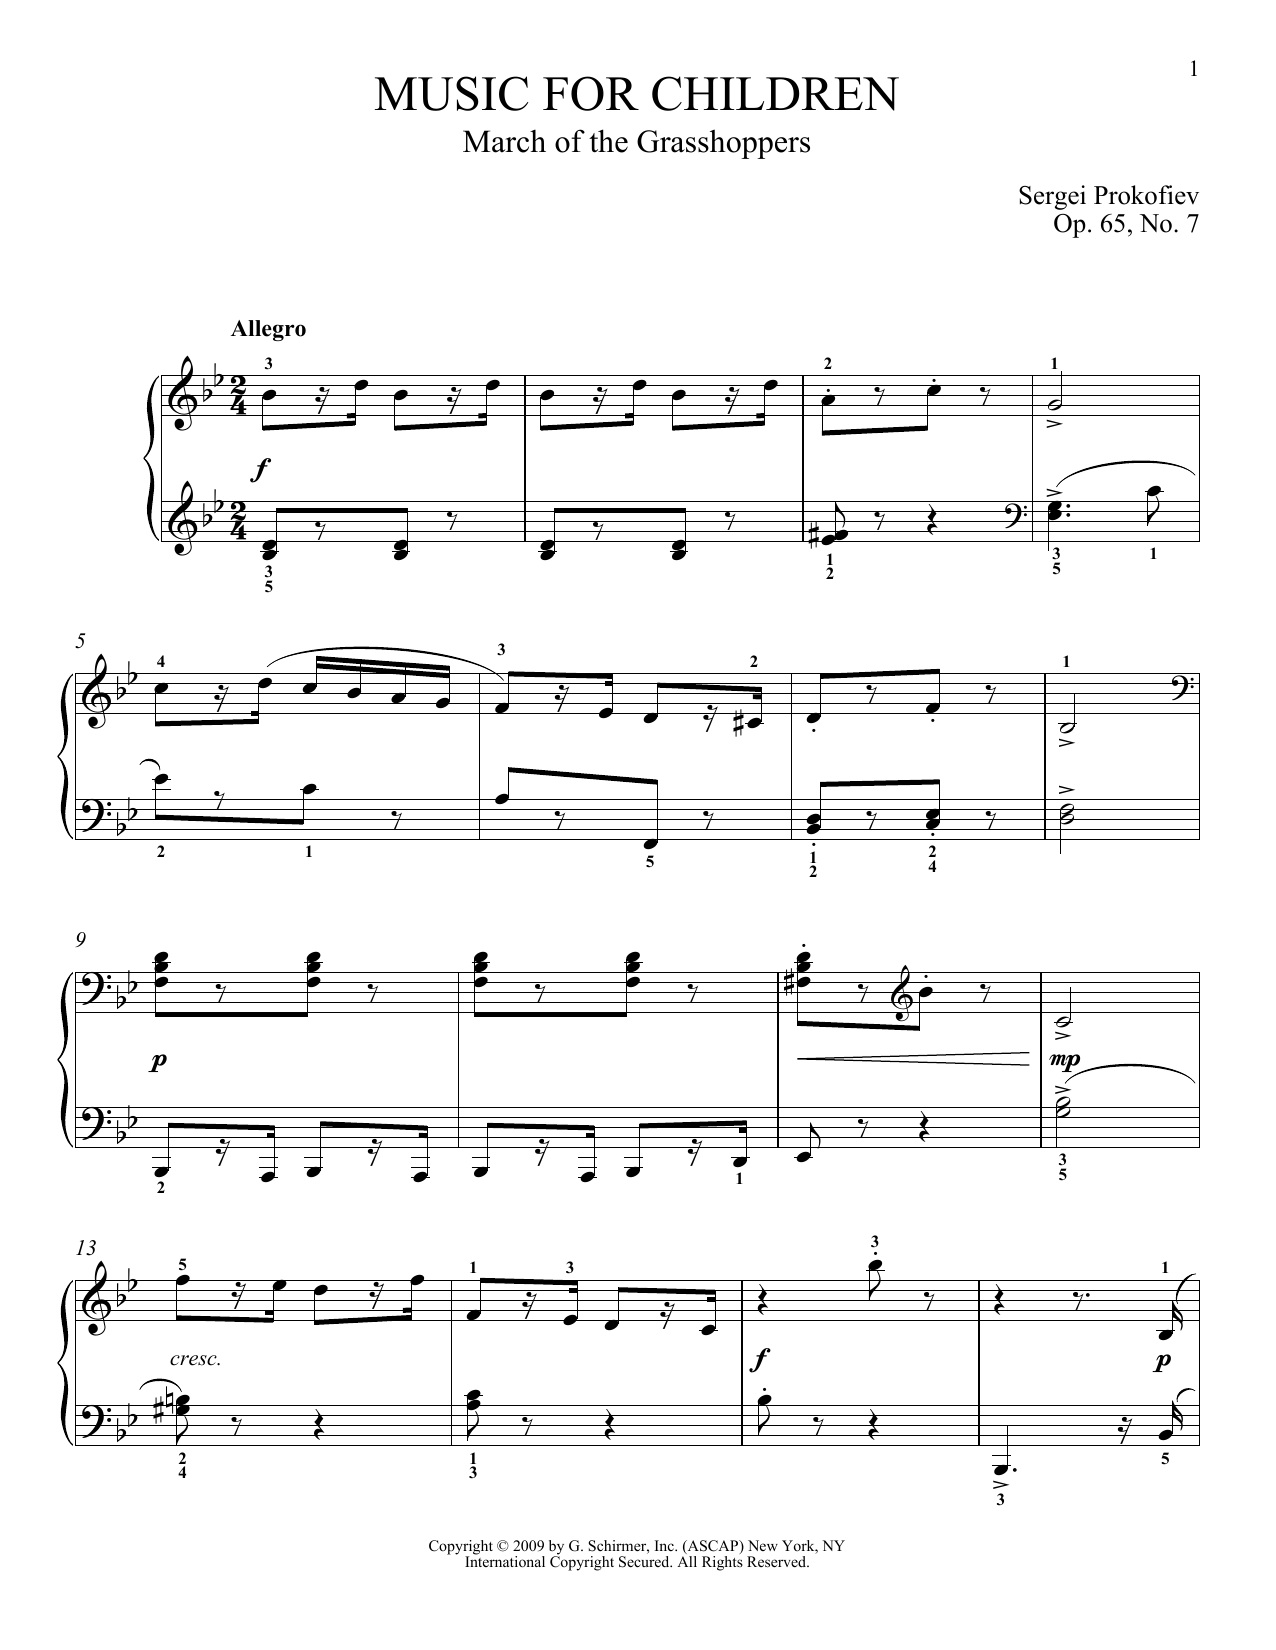 7 Years Piano Pdf sergei prokofiev 'march of the grasshoppers' sheet music notes, chords |  download printable piano - sku: 73500